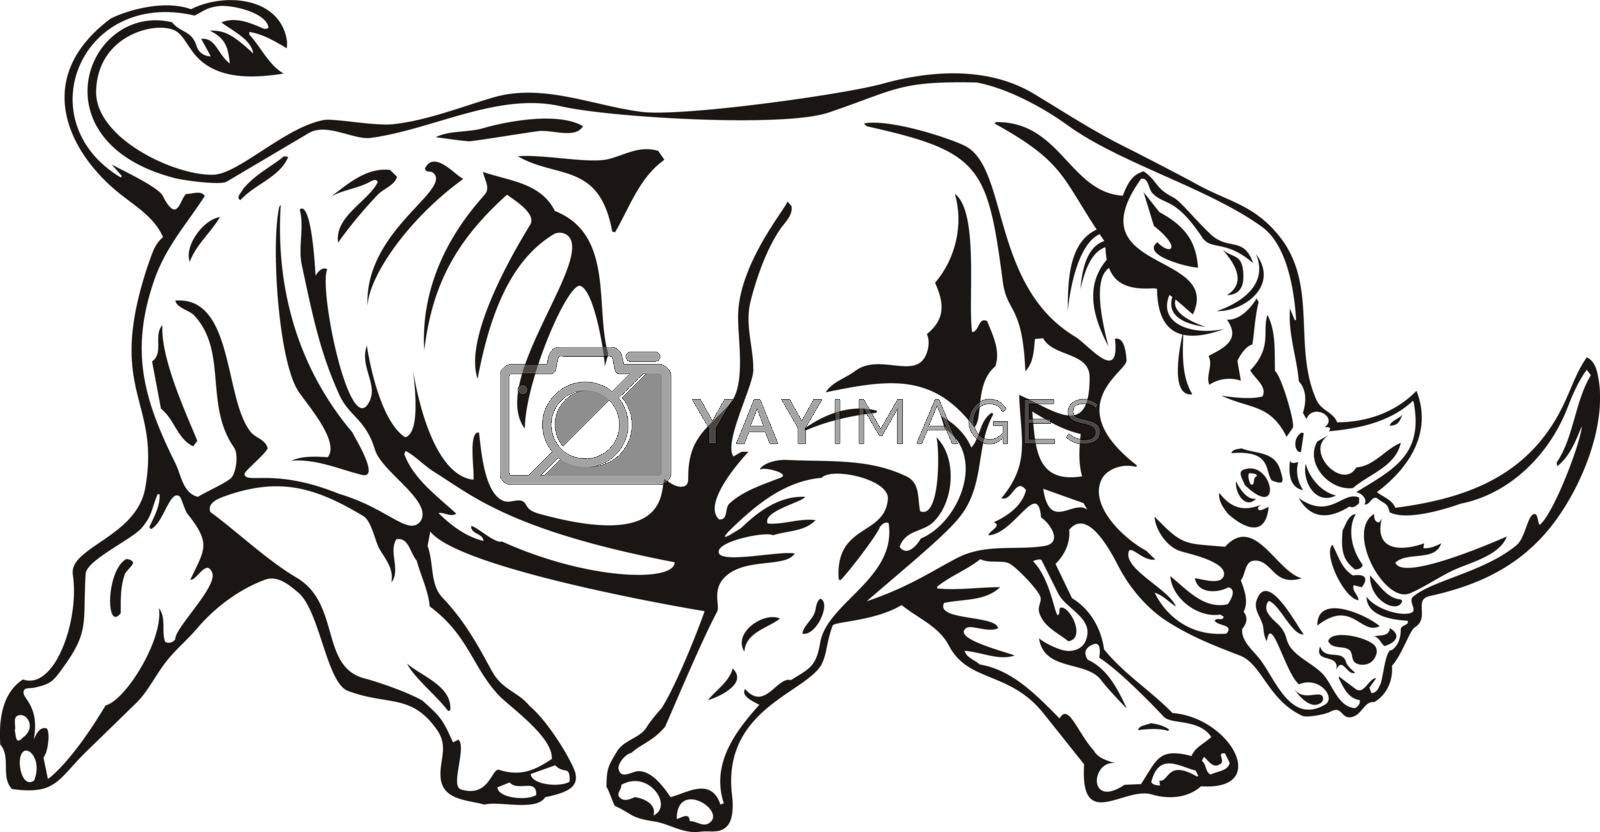 Retro woodcut style illustration of a white rhinoceros or square-lipped rhinoceros, the largest extant species of rhinoceros, running and charging side view on isolated background in black and white.